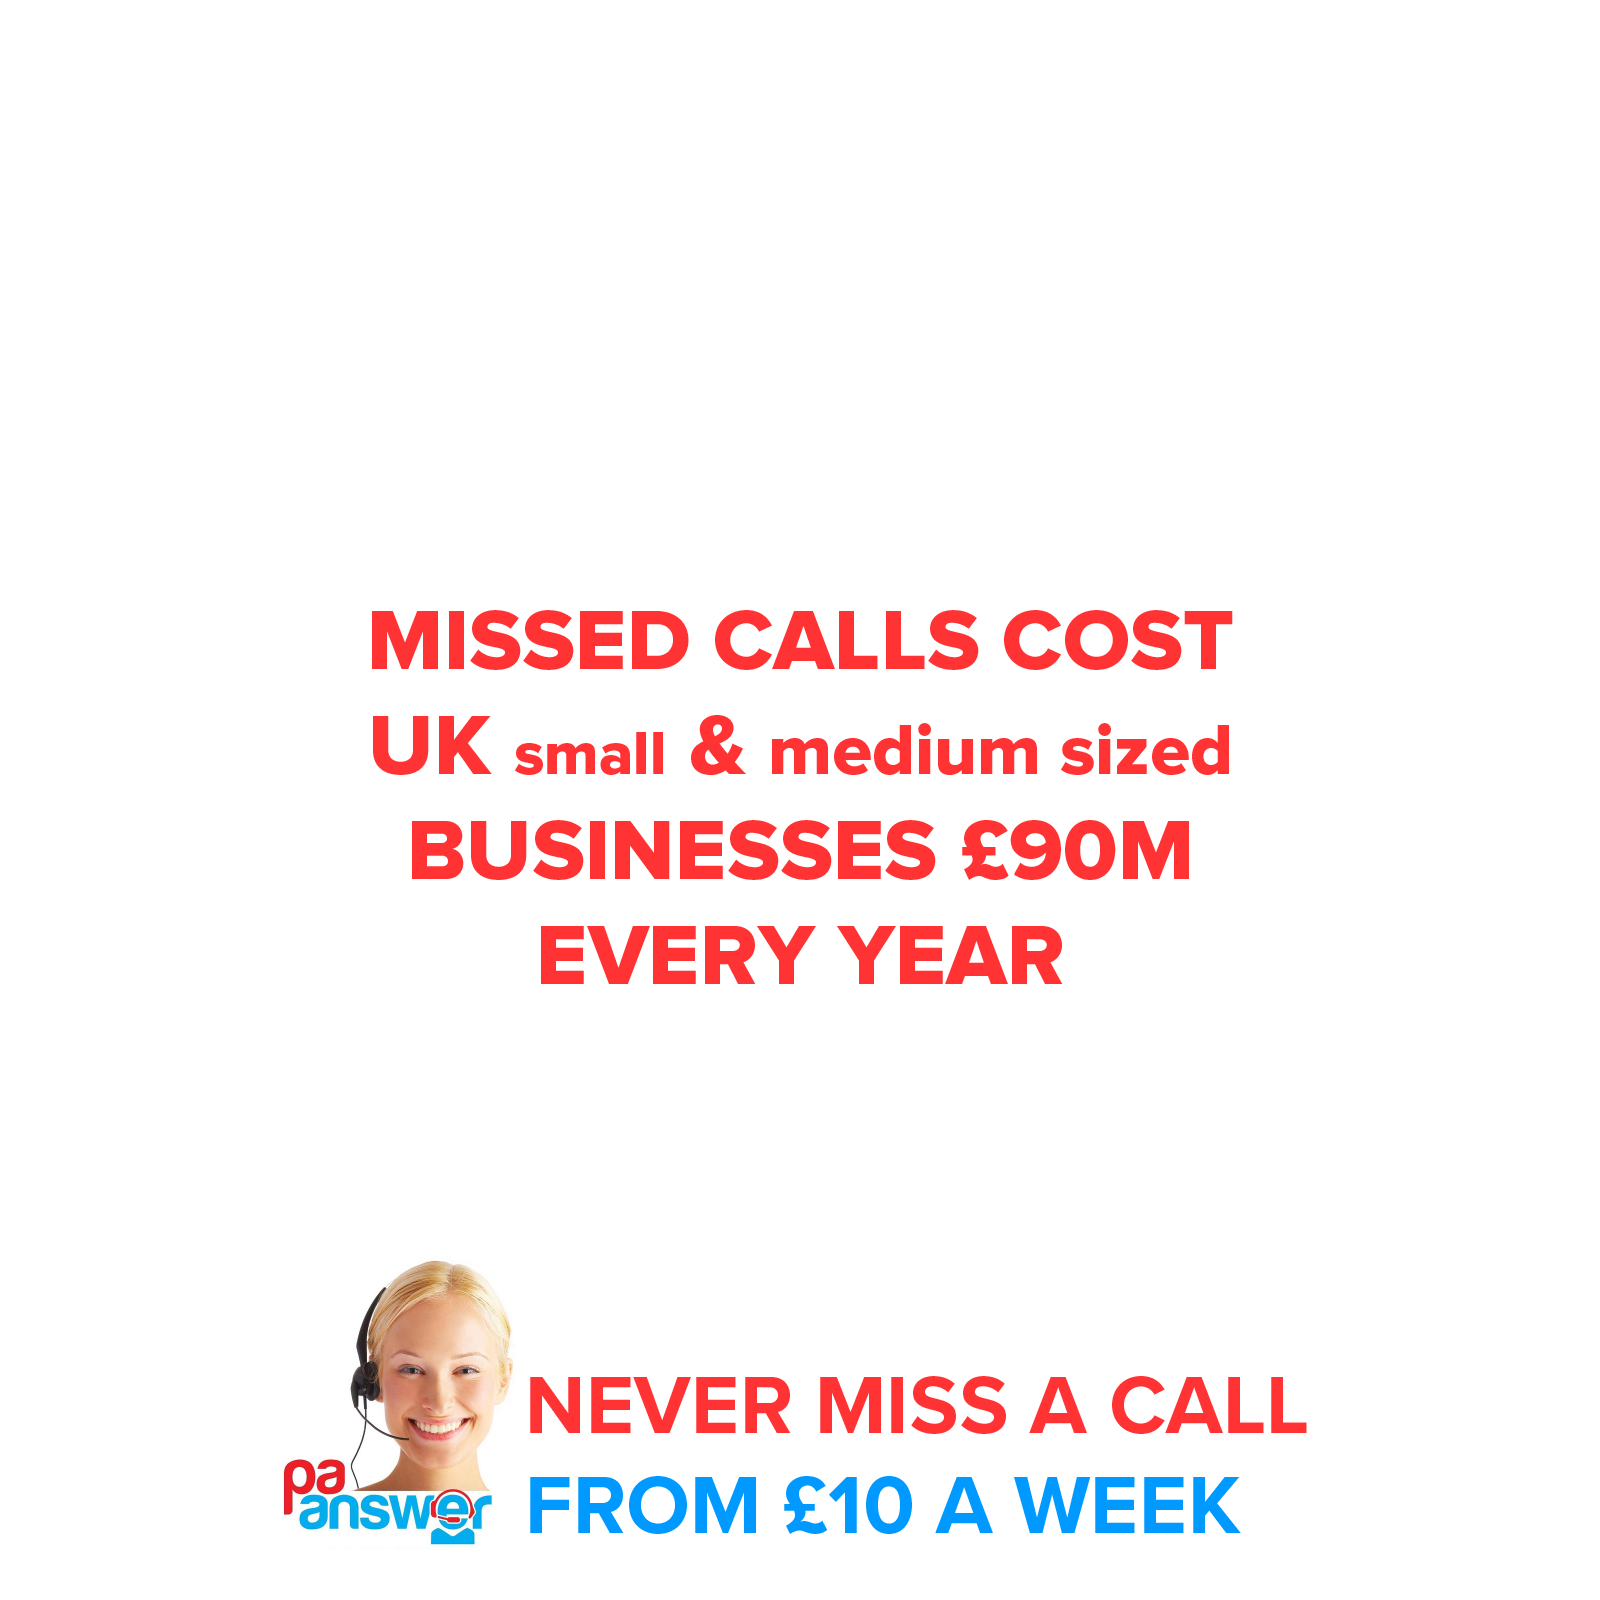 Missed calls cost 90 million a year